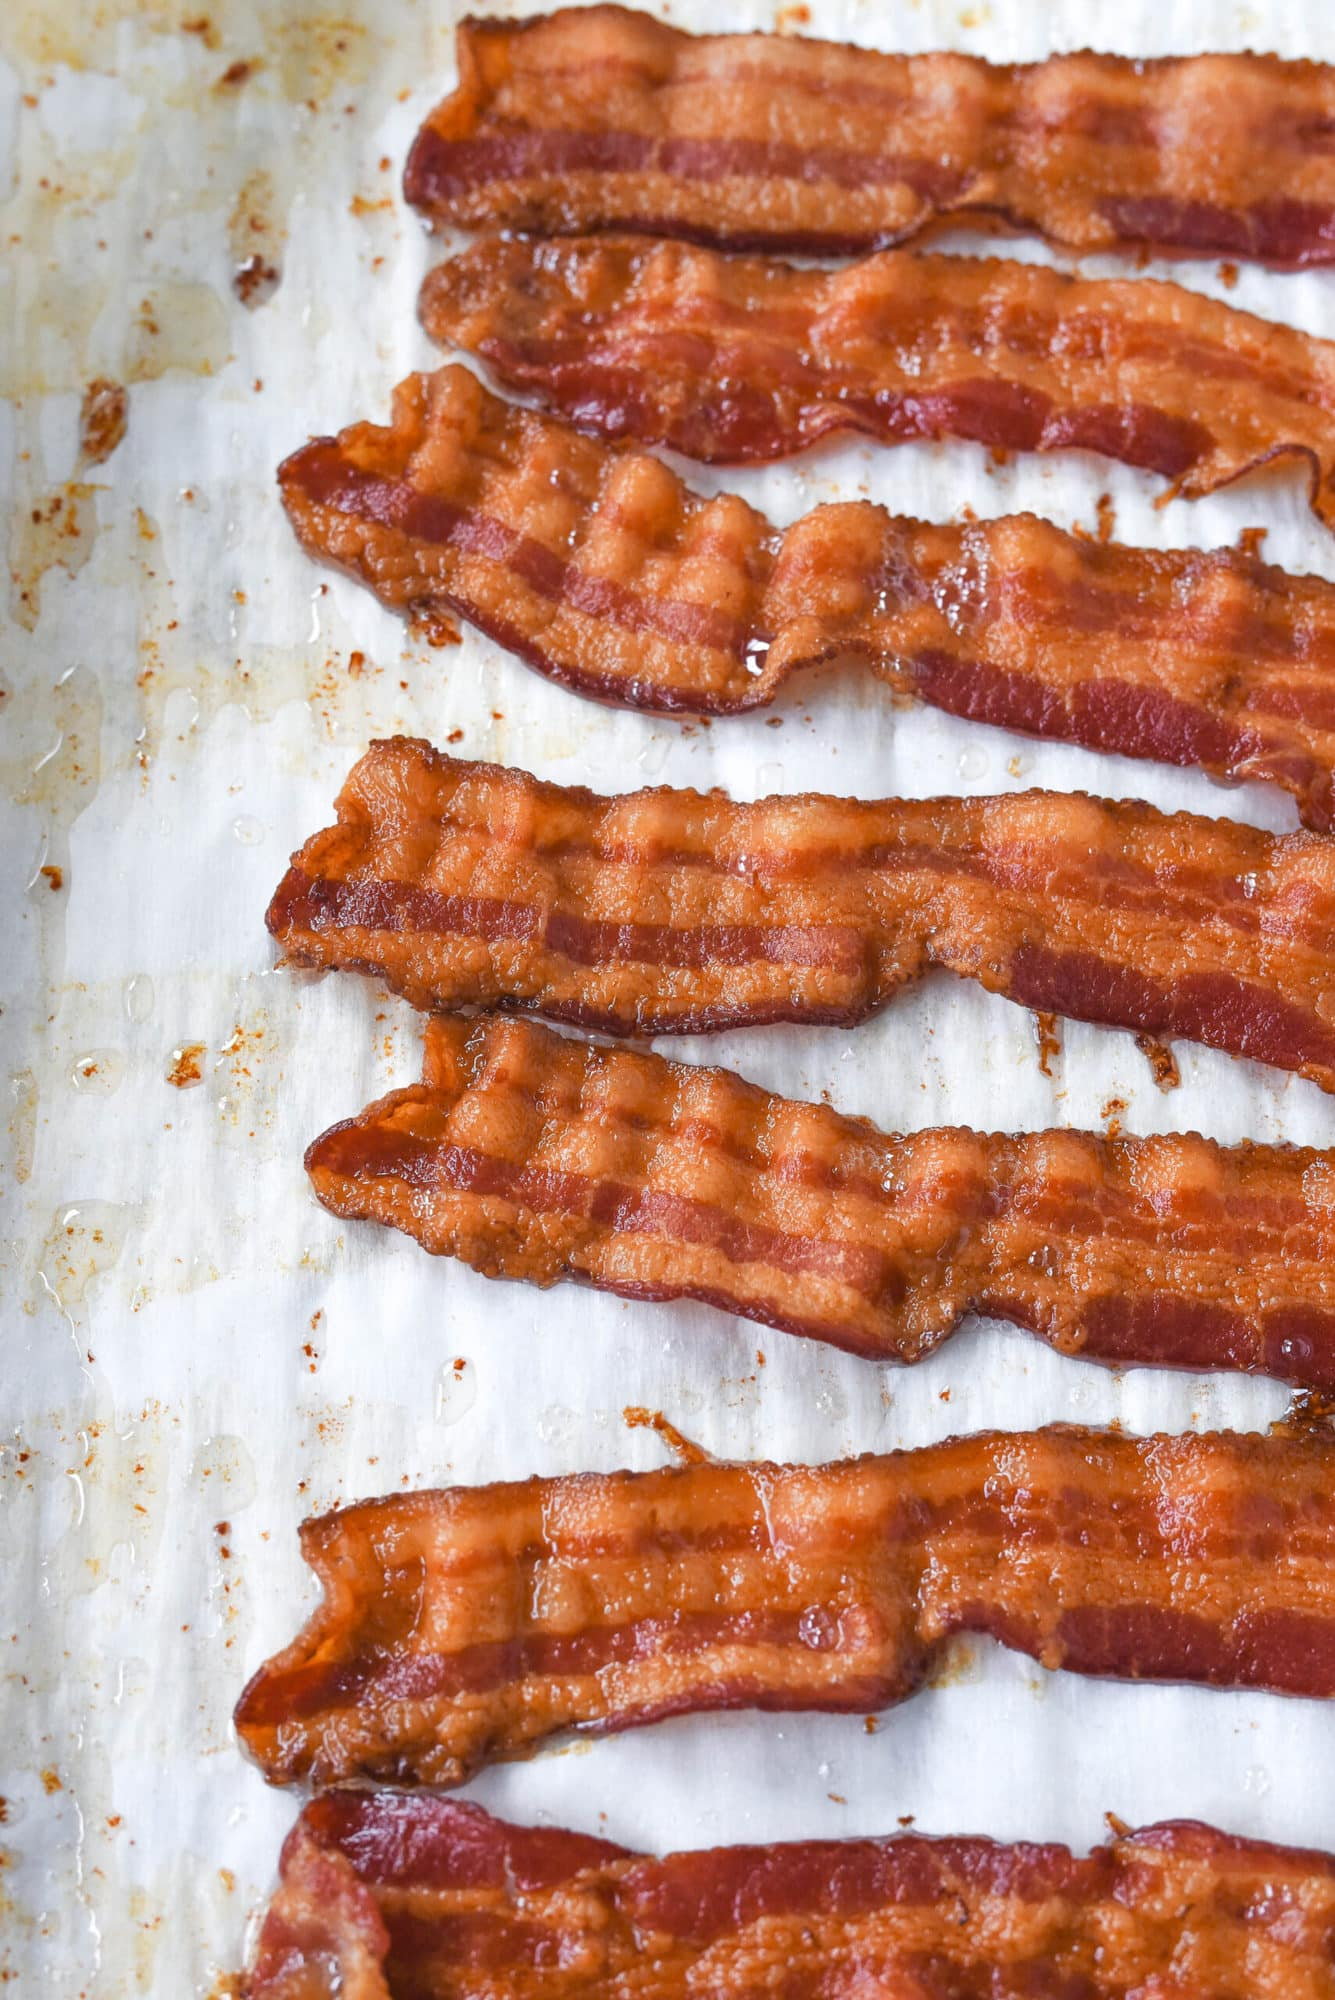 strips of cooked bacon on parchment paper